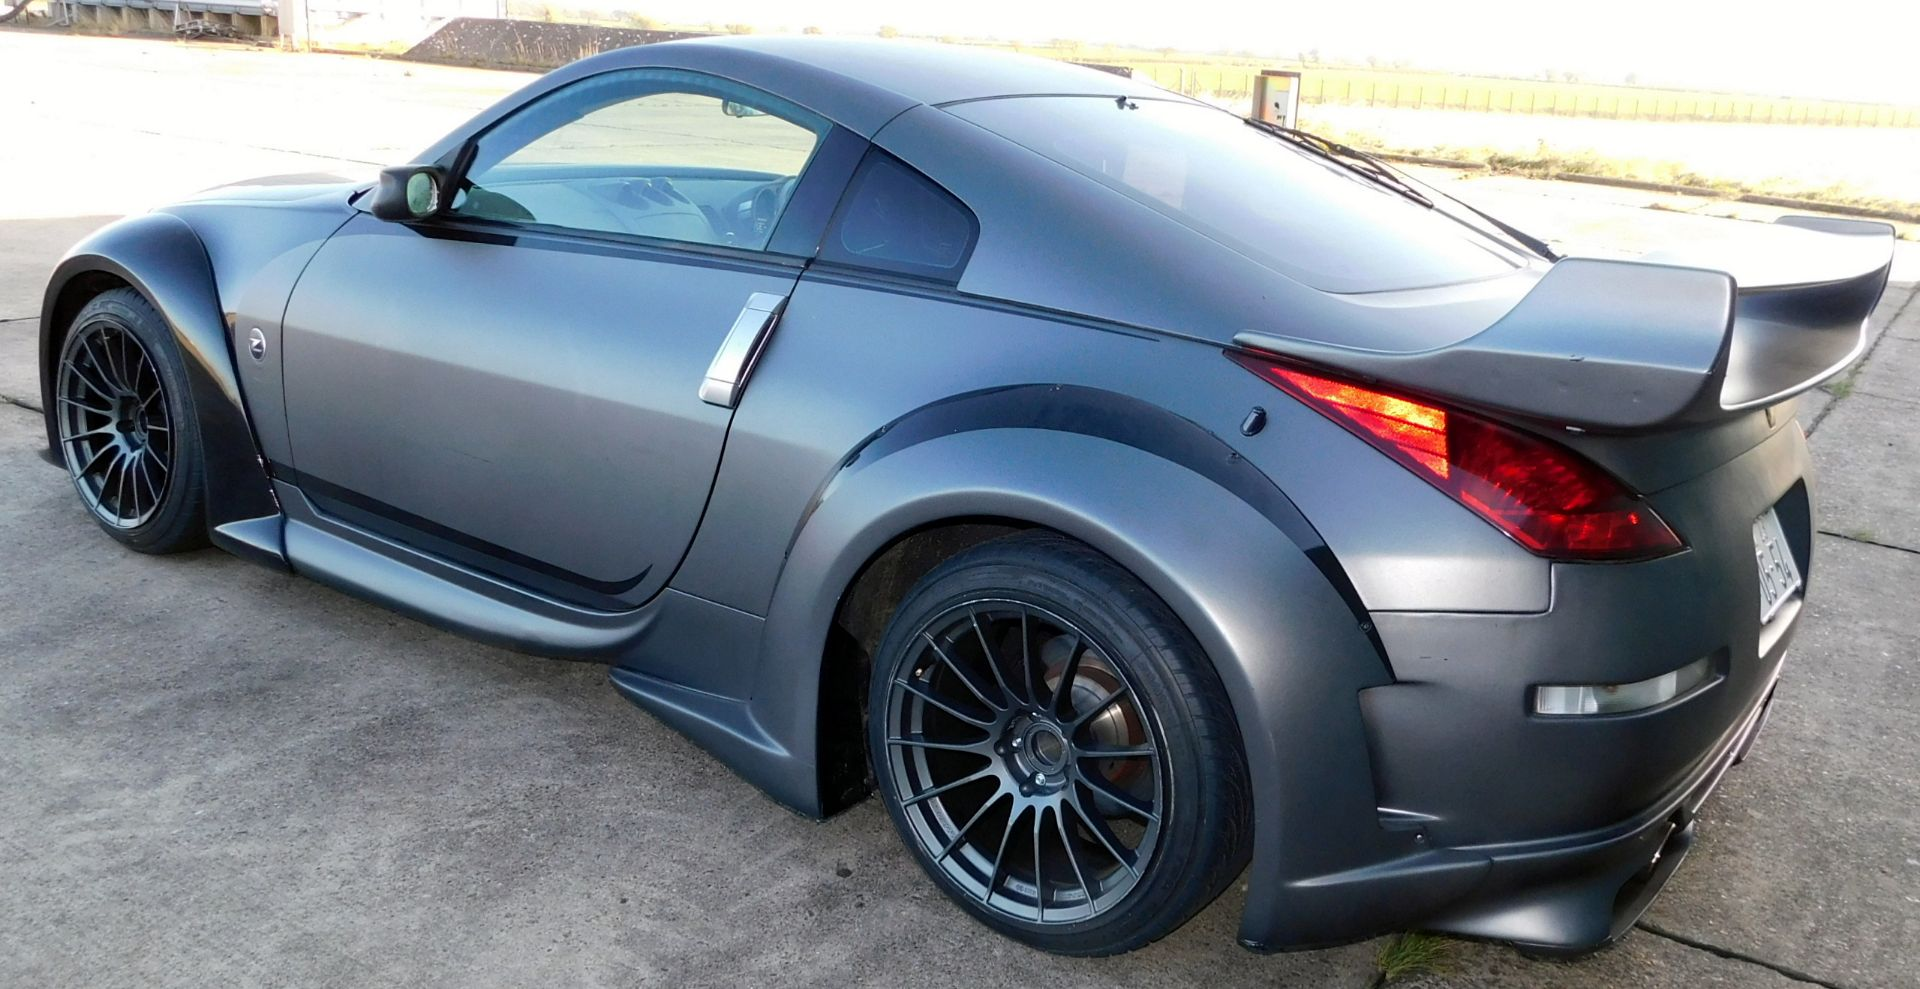 """Nissan 350z 2 door Coupe Original Picture Car From """"Fast & Furious 3""""* ,LS3 V8 6.2 Litre Engine, - Image 6 of 16"""